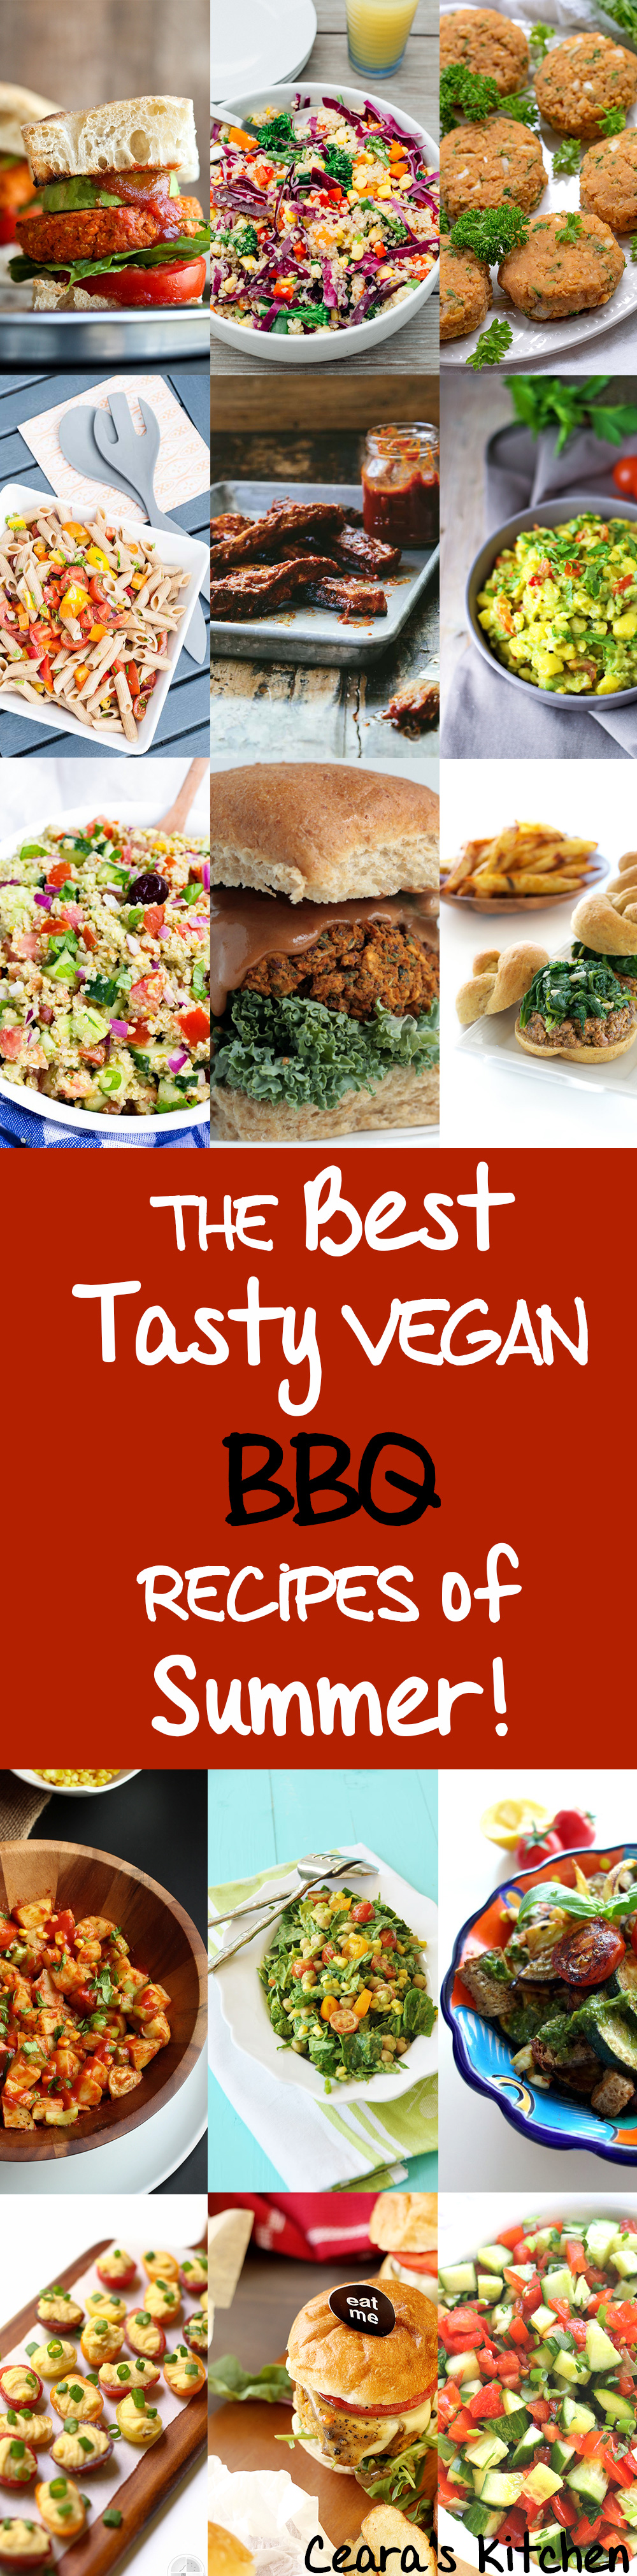 Tasty-Vegan-BBQ-round-UP